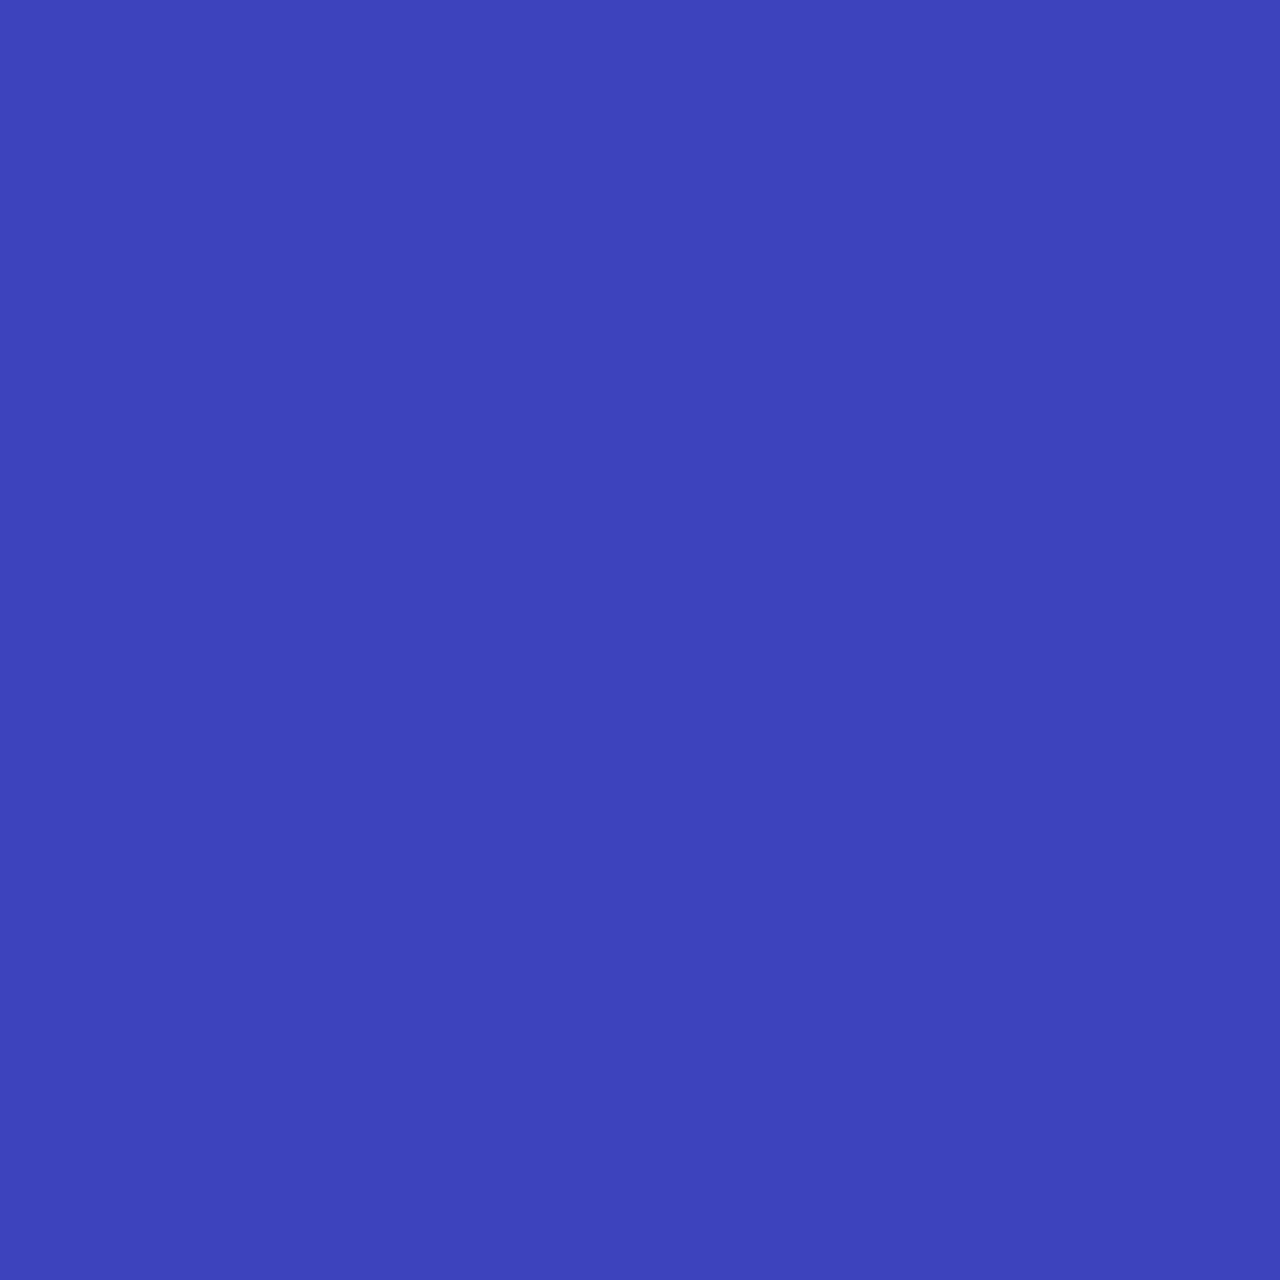 #0121 Rosco Gels Roscolux Blue Diffusion, 20x24""